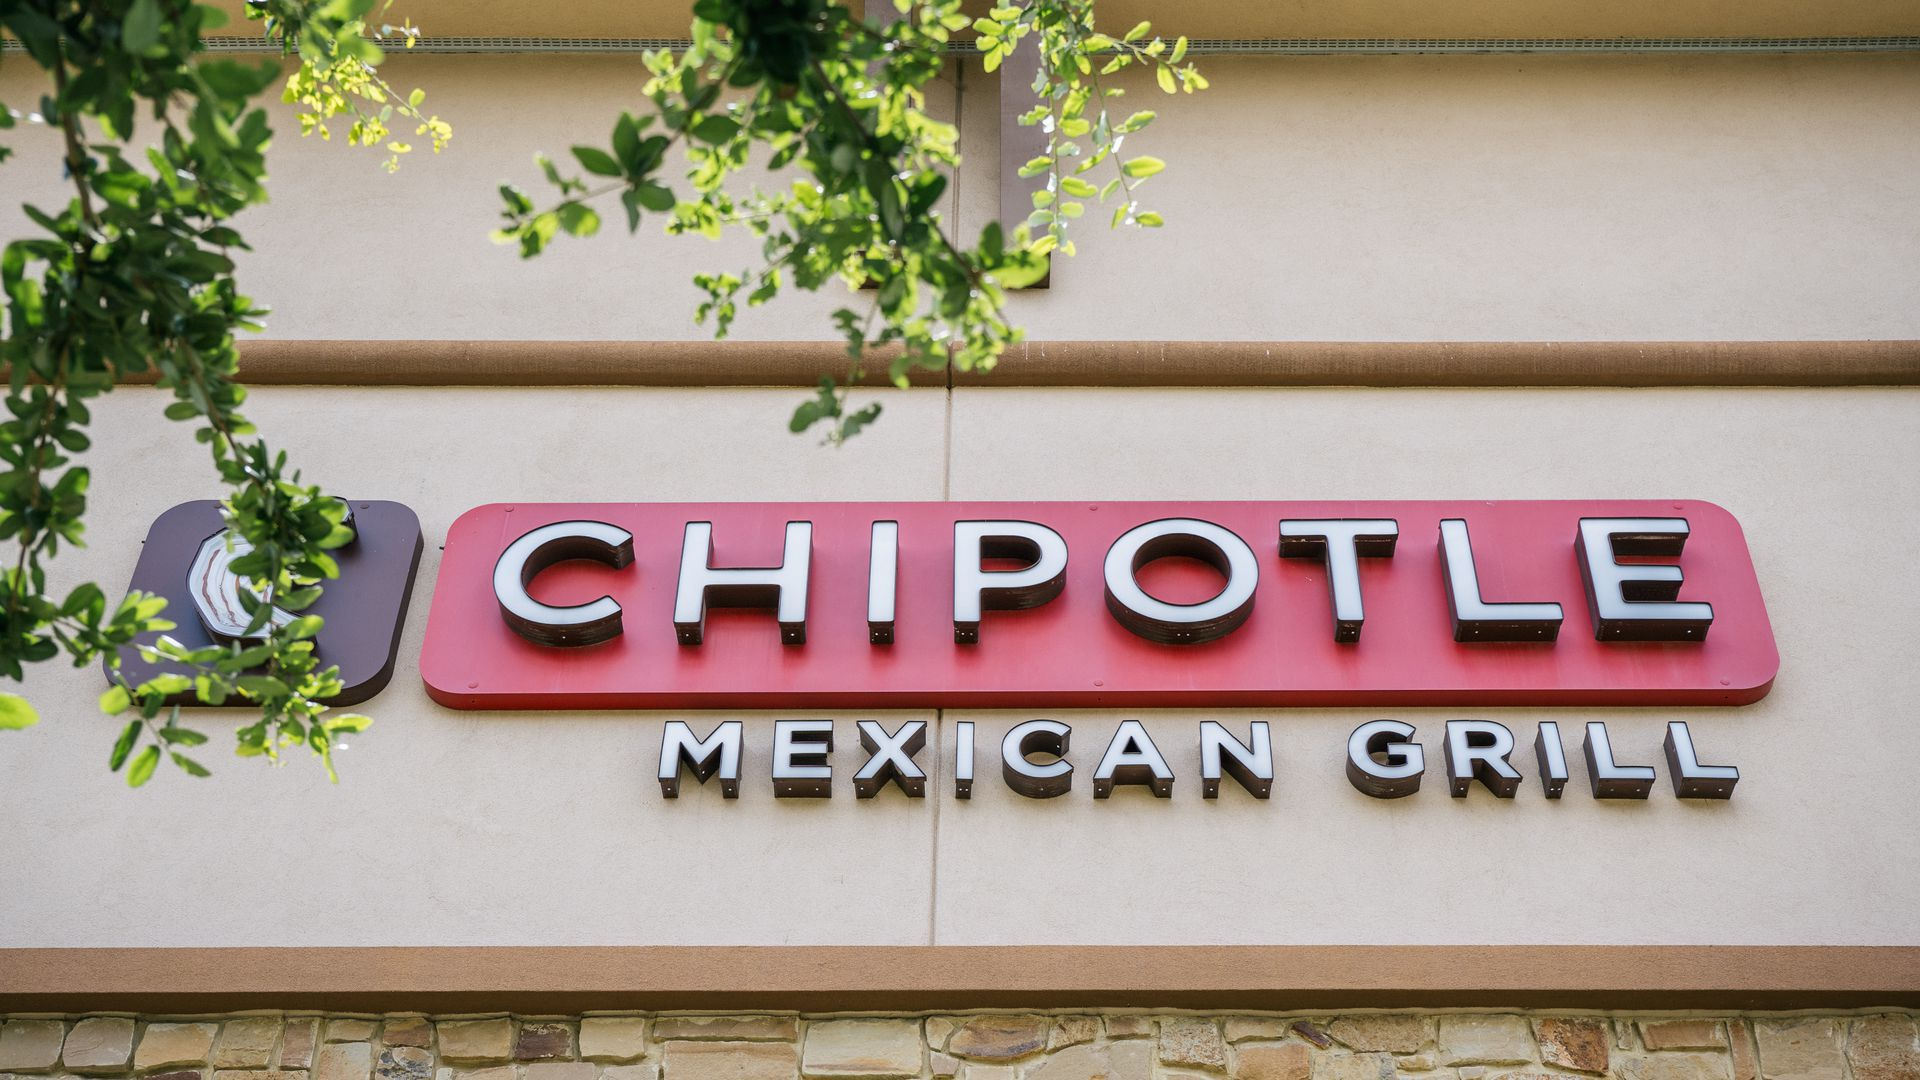 A photo of the Chipotle logo